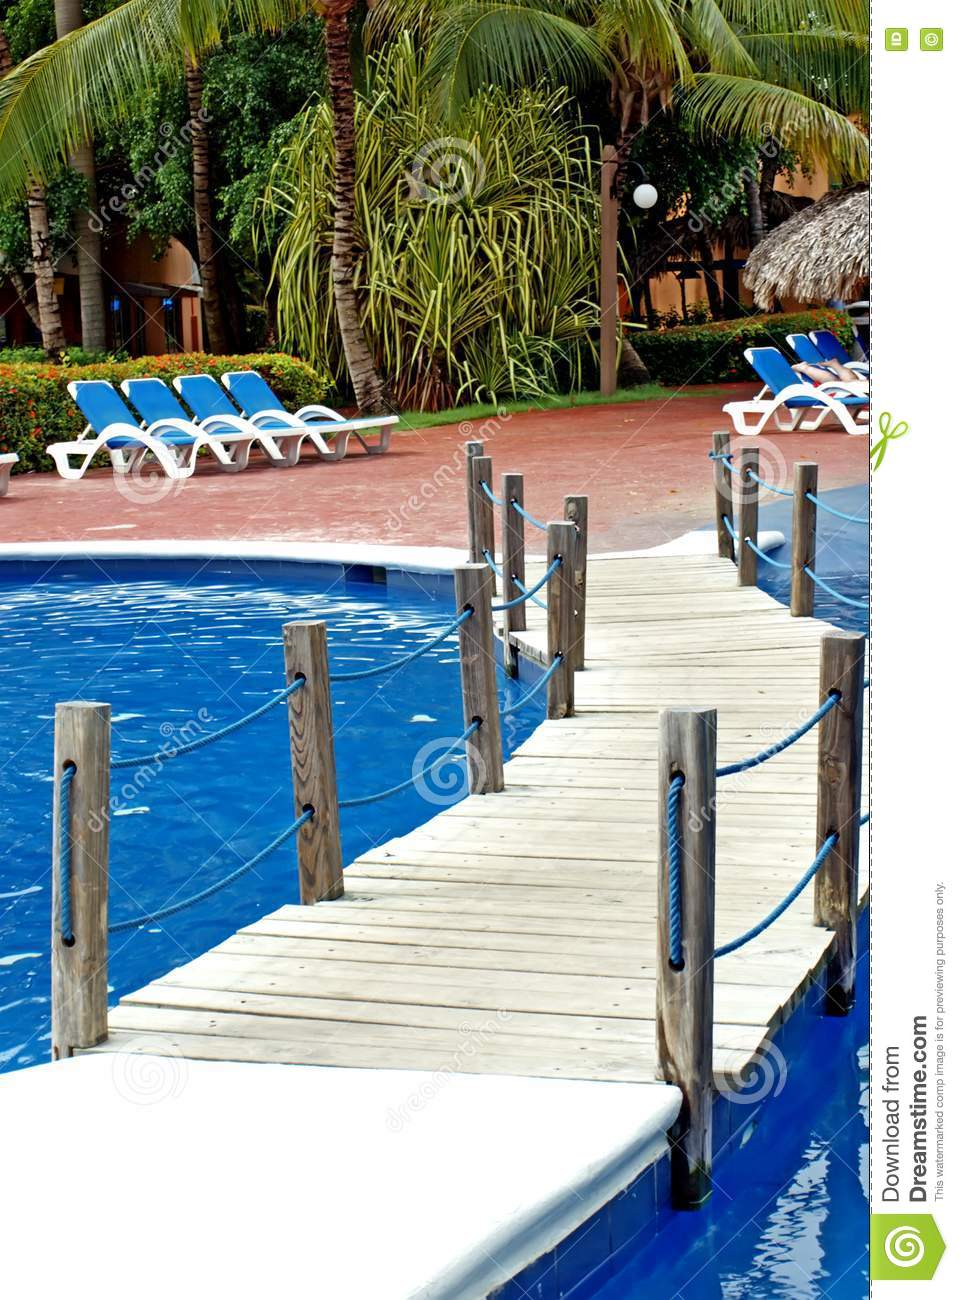 Puente sobre la piscina y las sillas for Fotos en la piscina